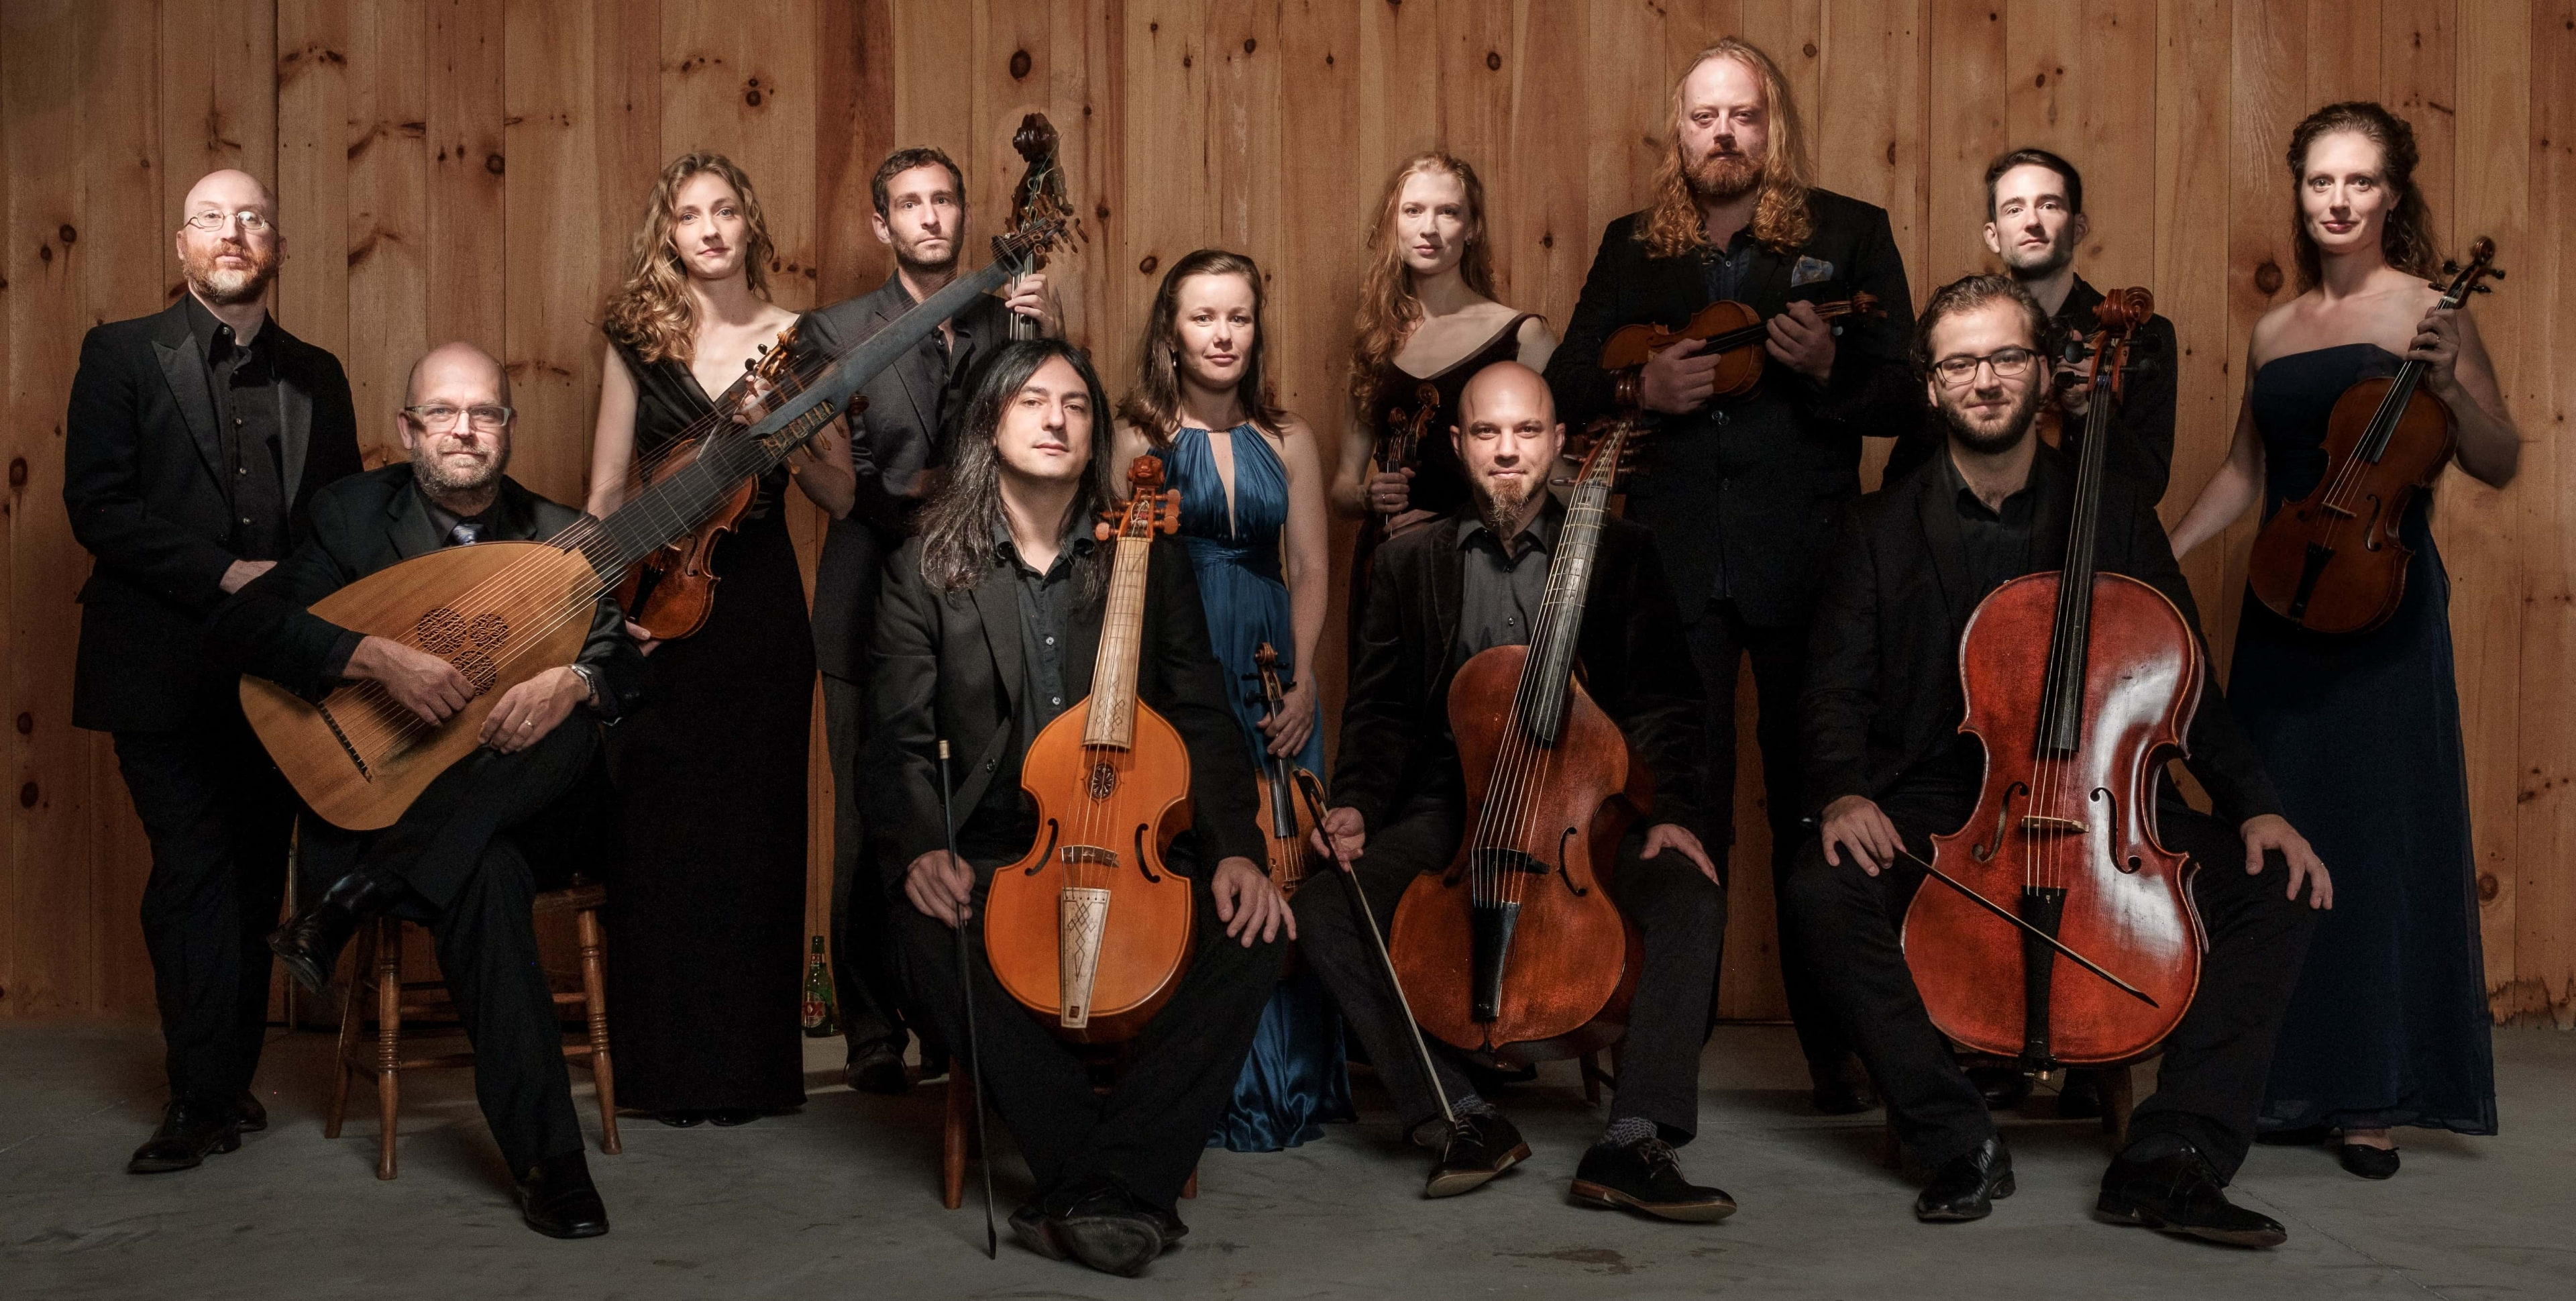 "Kivie Cahn-Lipman, assistant professor of Cello in the Dana School of Music, pictured fifth from the left, is the director of ACRONYM, a baroque ensemble founded in 2012 that made its European debut this past summer in the Netherlands at the Utrecht Early Music Festival. The group will record its 10th  album after performing at the ""Music Before 1800"" series in New York in October."